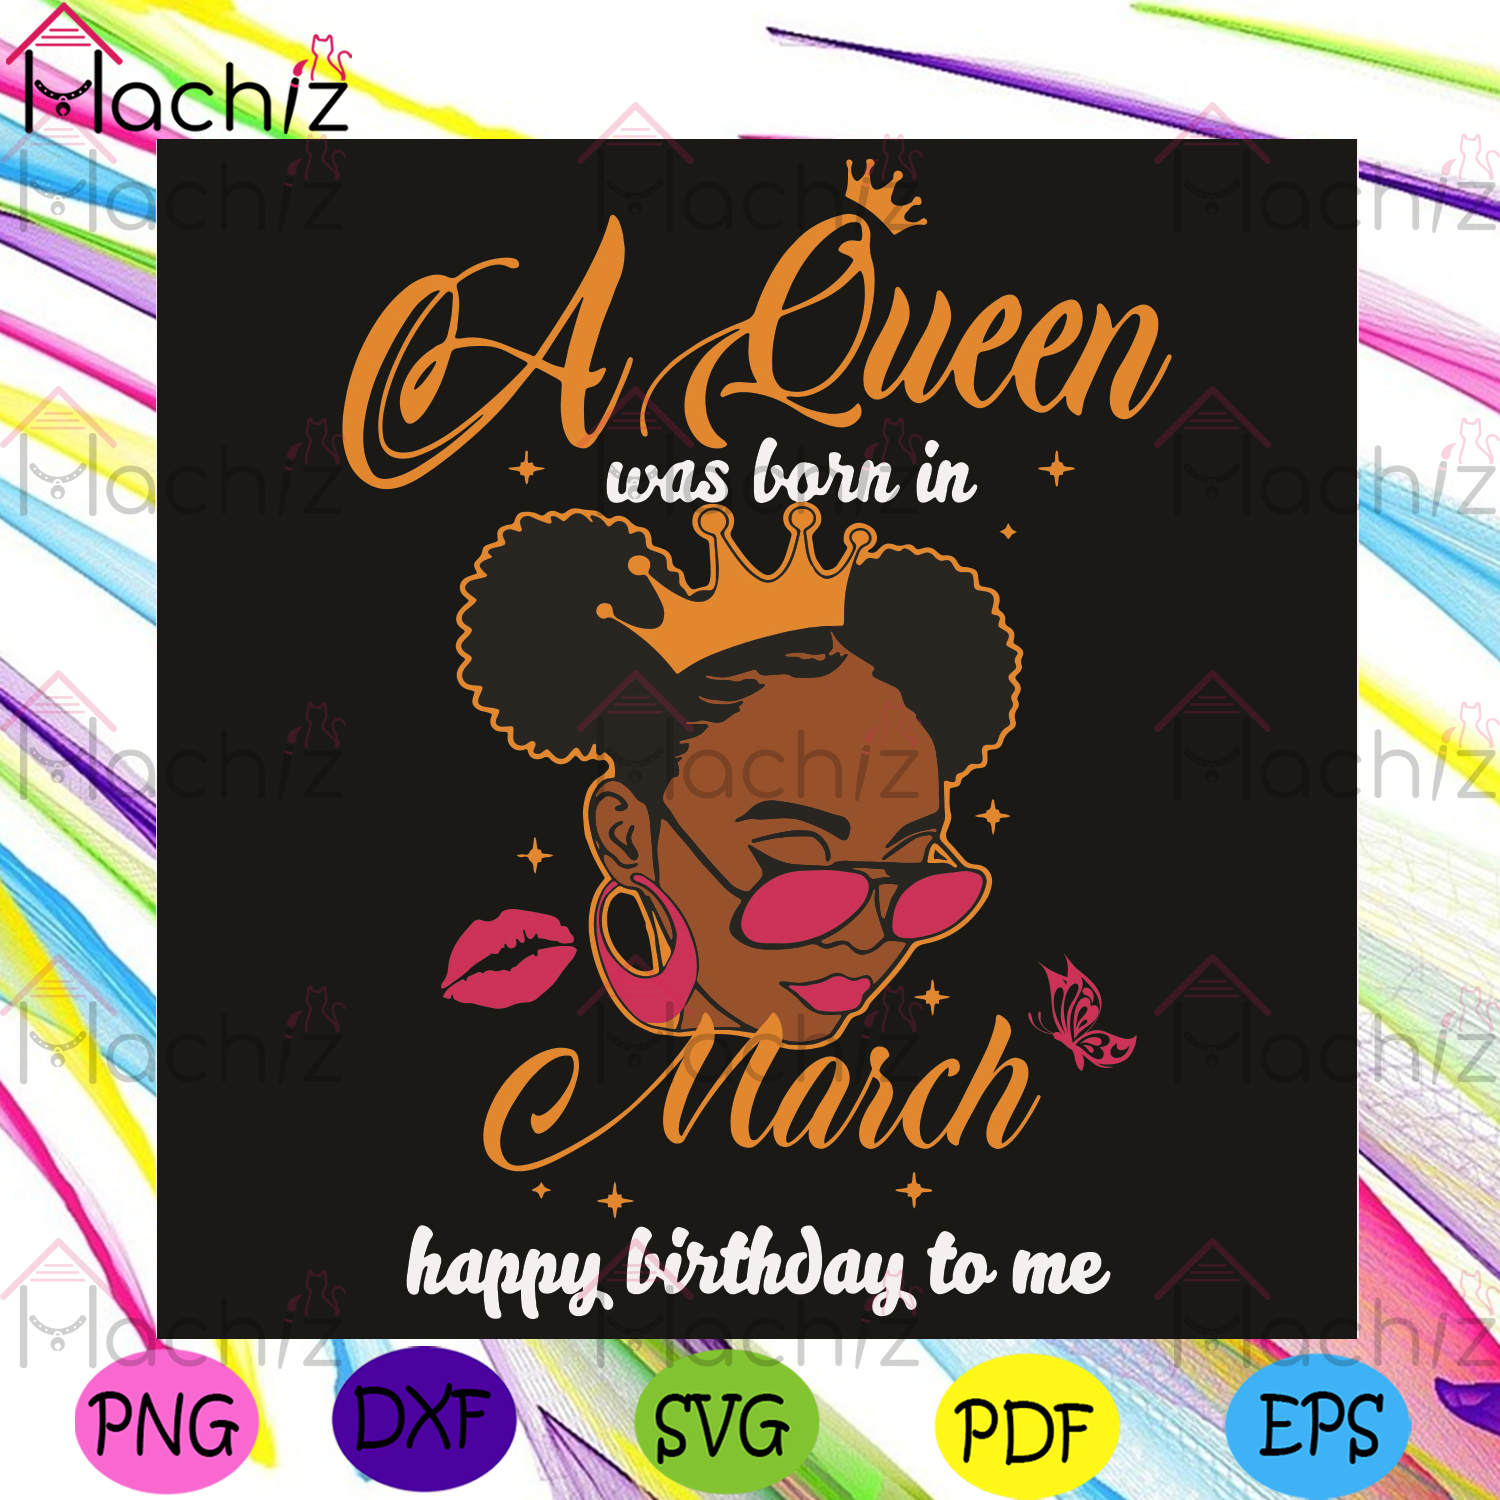 A Queen Was Born In March Happy Birthday To Me Svg, Birthday Svg, Queen Born In March Svg, Girl Born In March Svg, Happy Birthday Svg, March Queen Svg, March Birthday Svg, Black Girl Svg, Birthday Gifts Svg, Birthday Party Svg